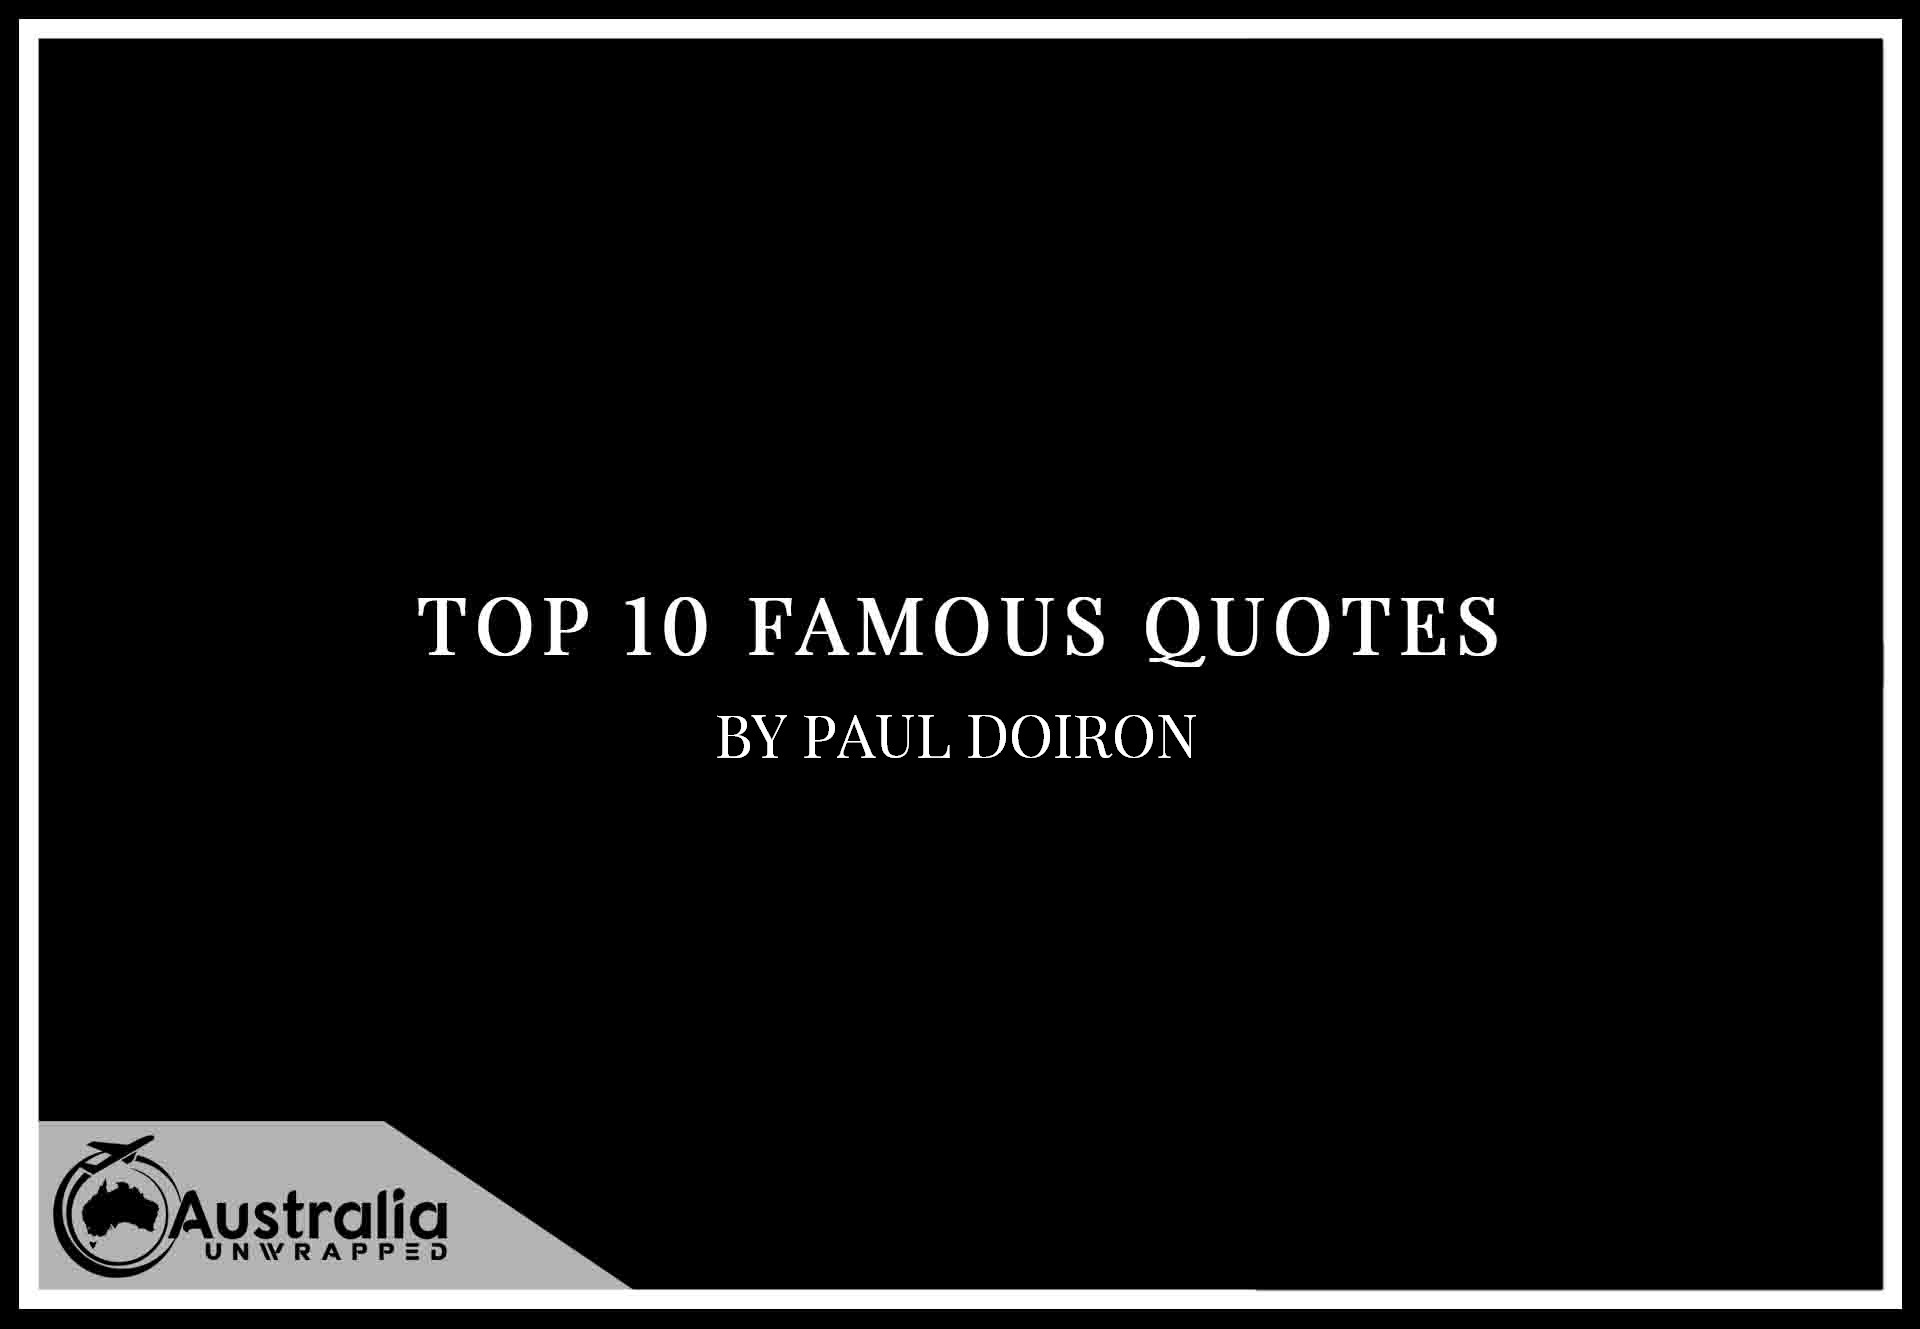 Top 10 Famous Quotes by Author Paul Doiron